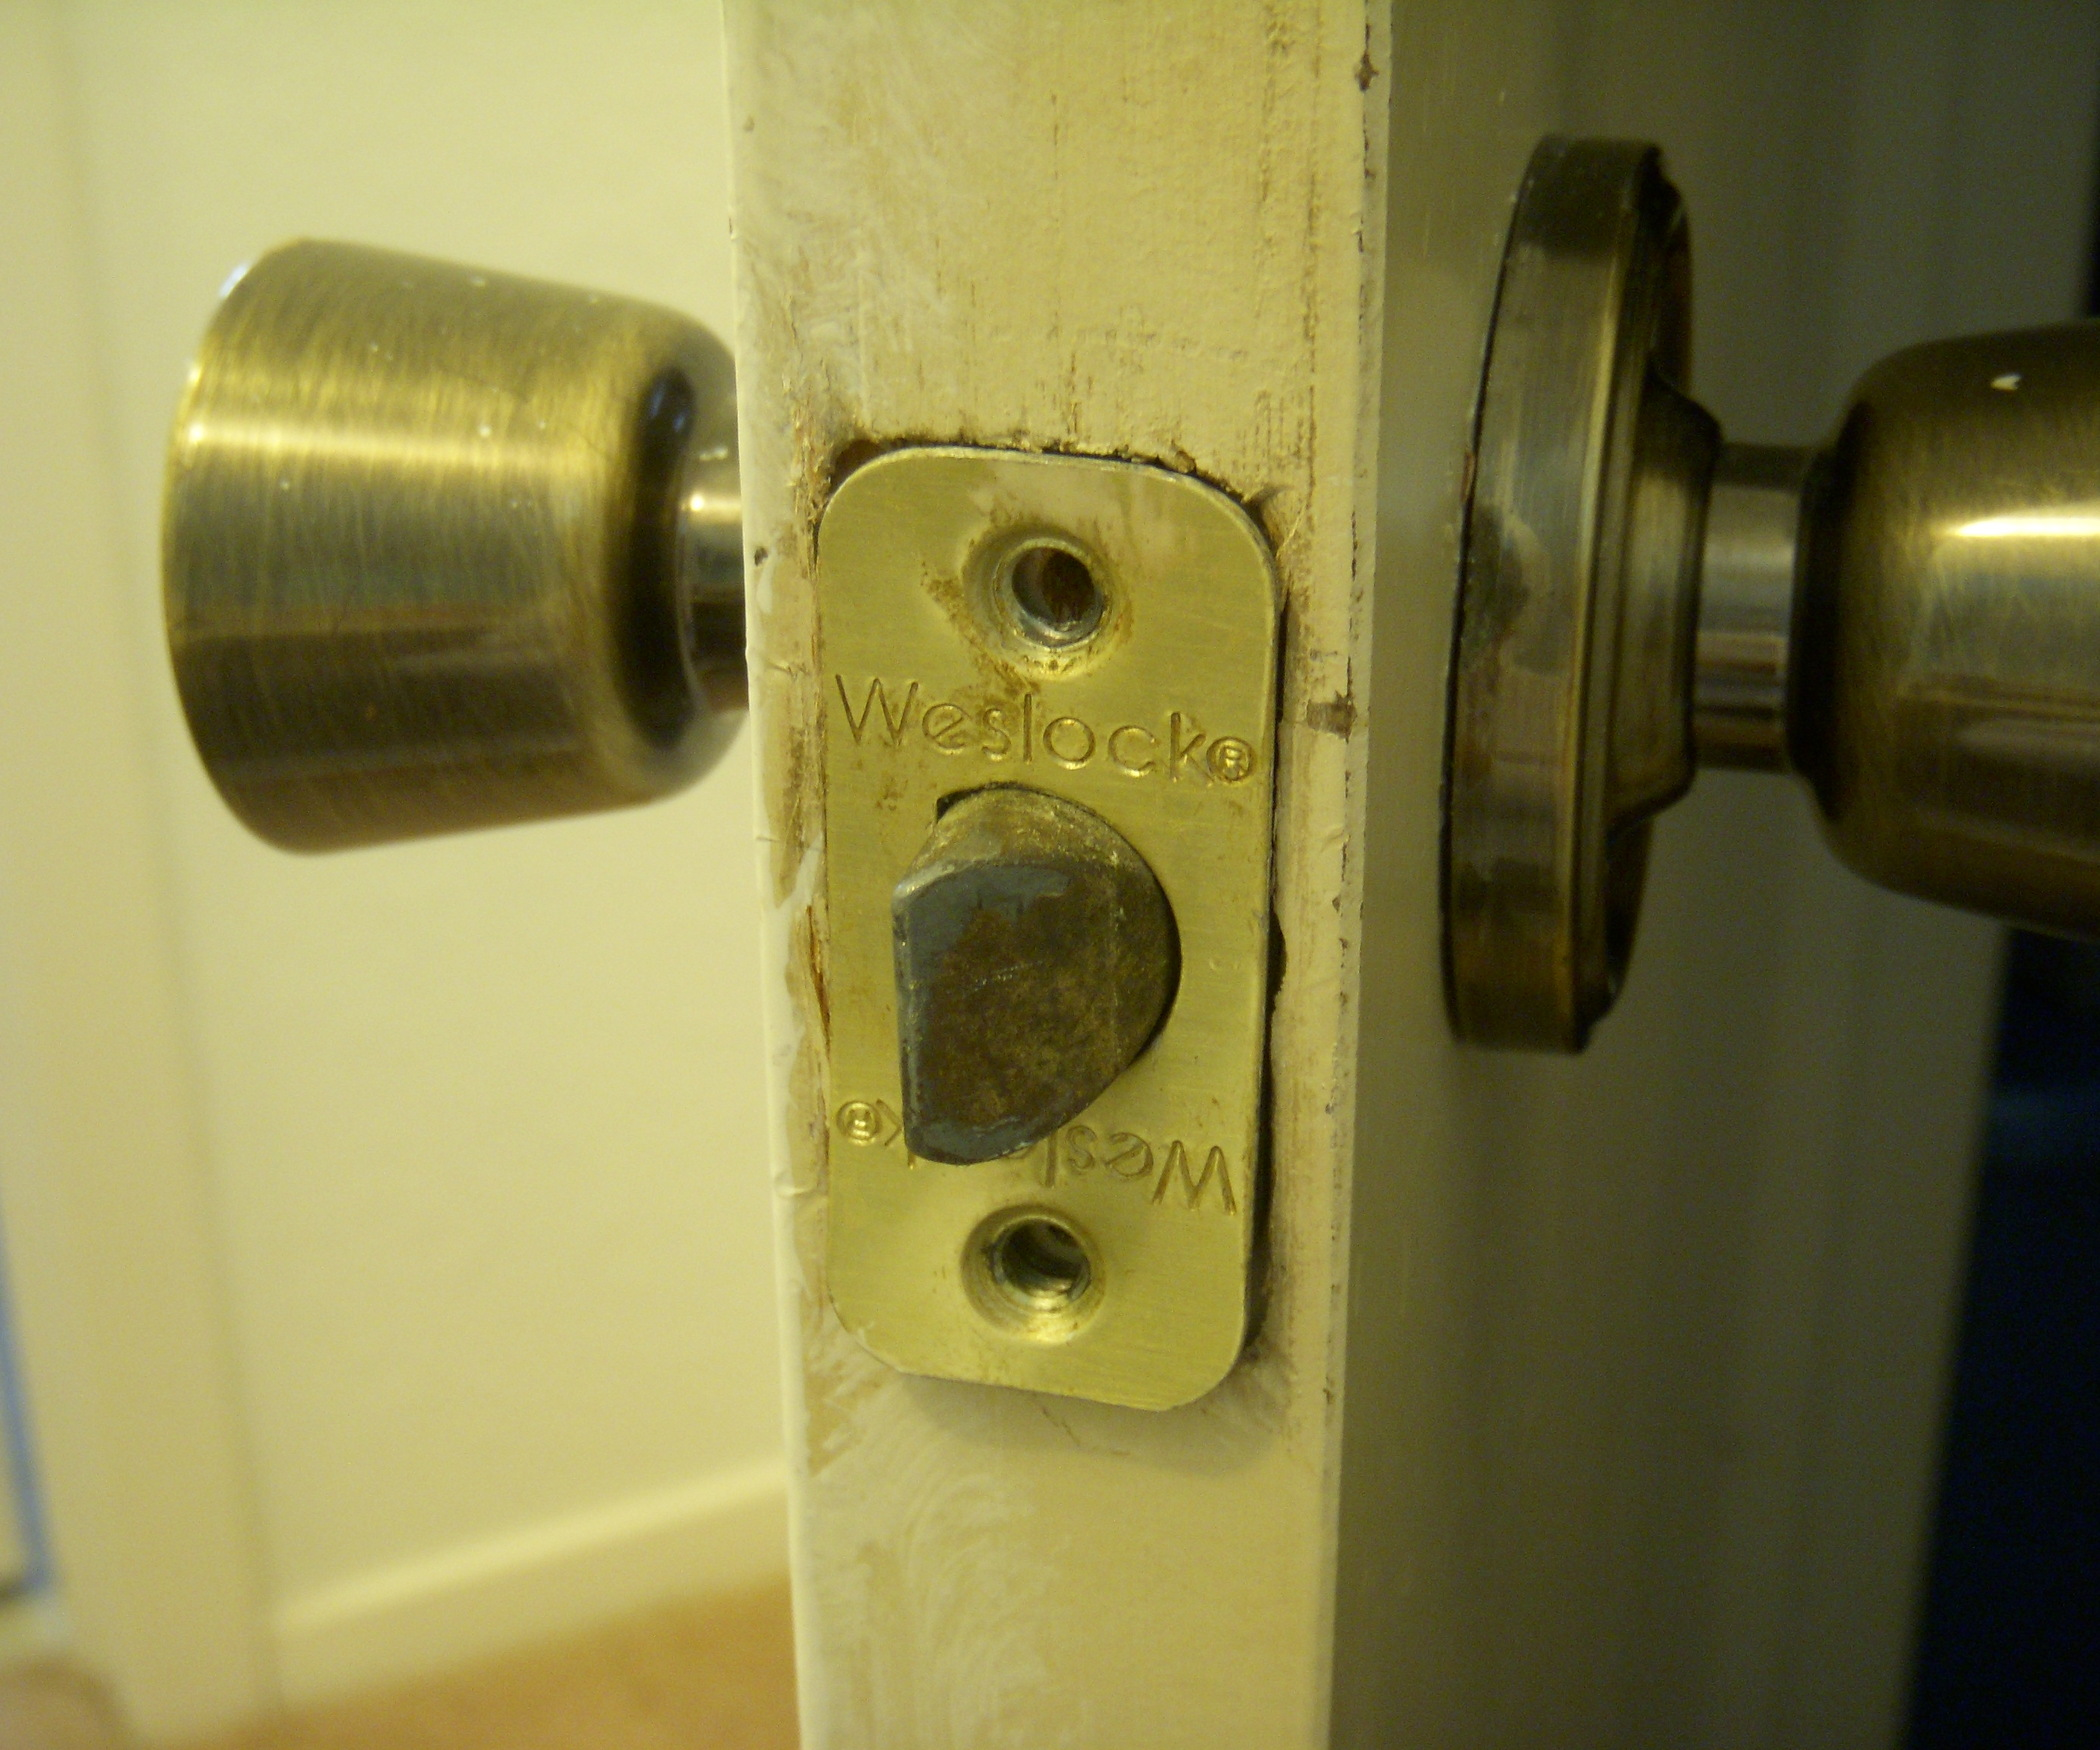 weslock door knob removal photo - 4